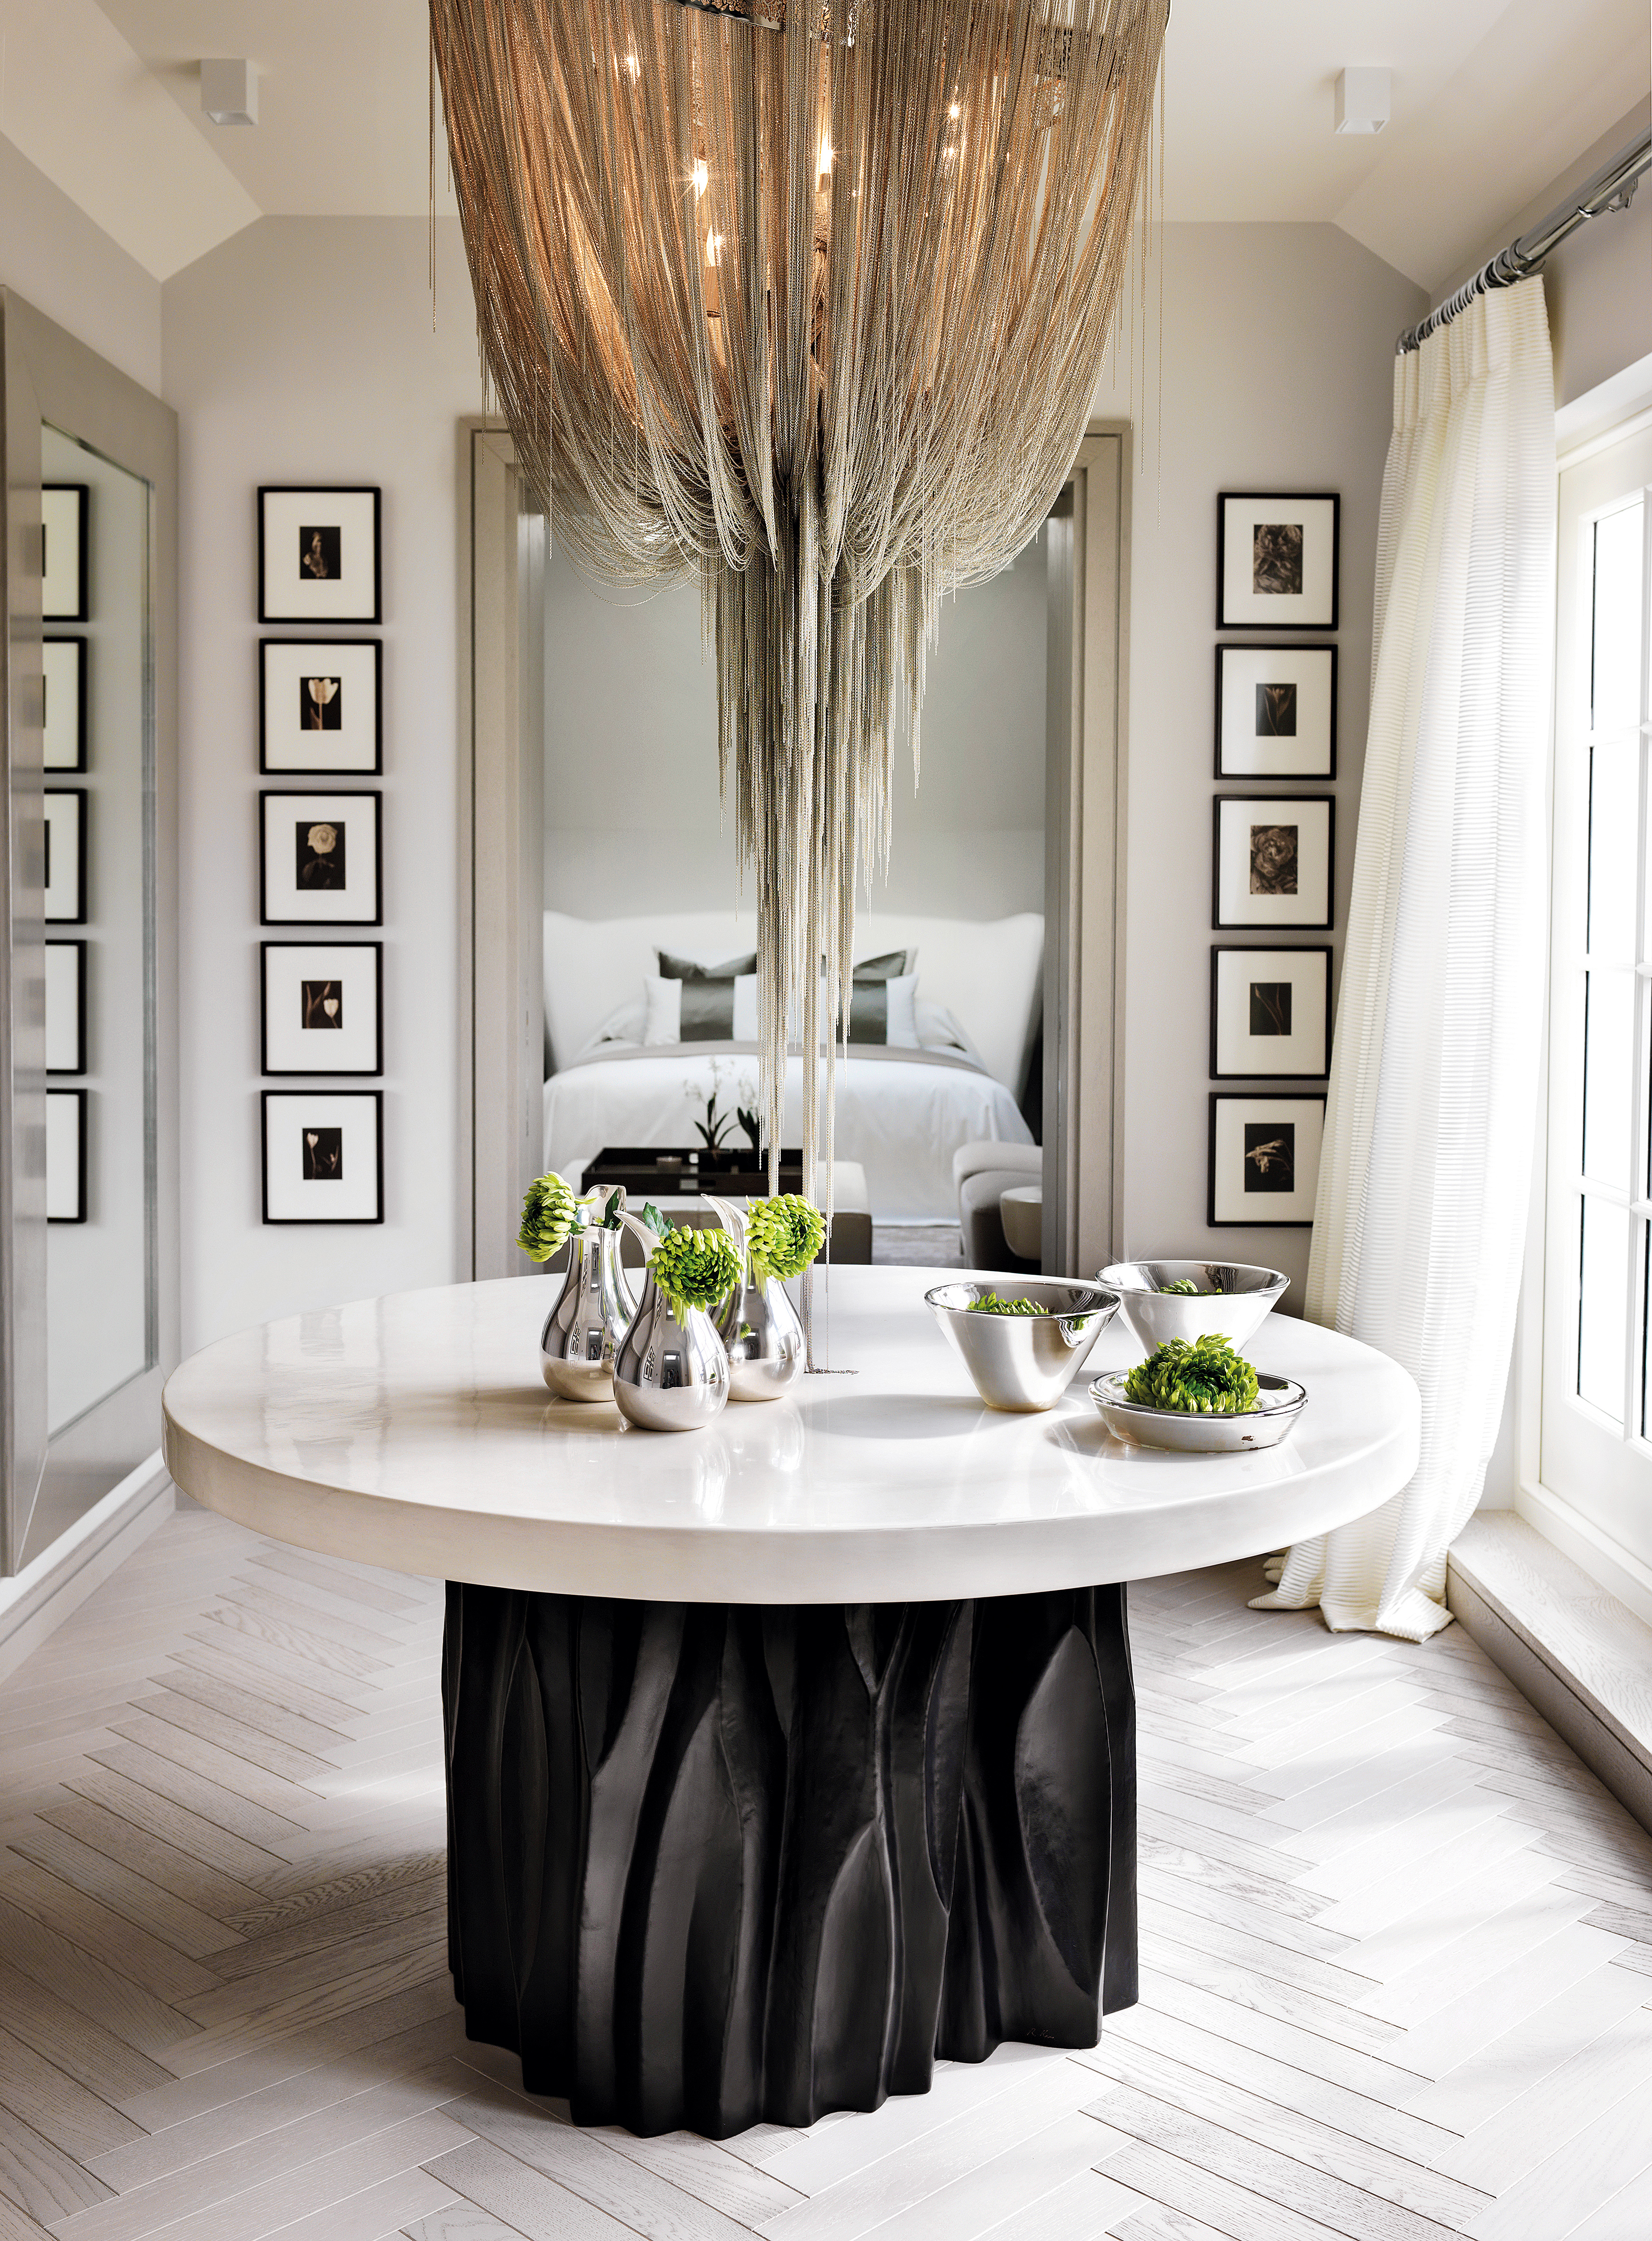 Kelly Hoppen The Art Of Interior Design Kitchen Interiors 2018 Home  Comforts.